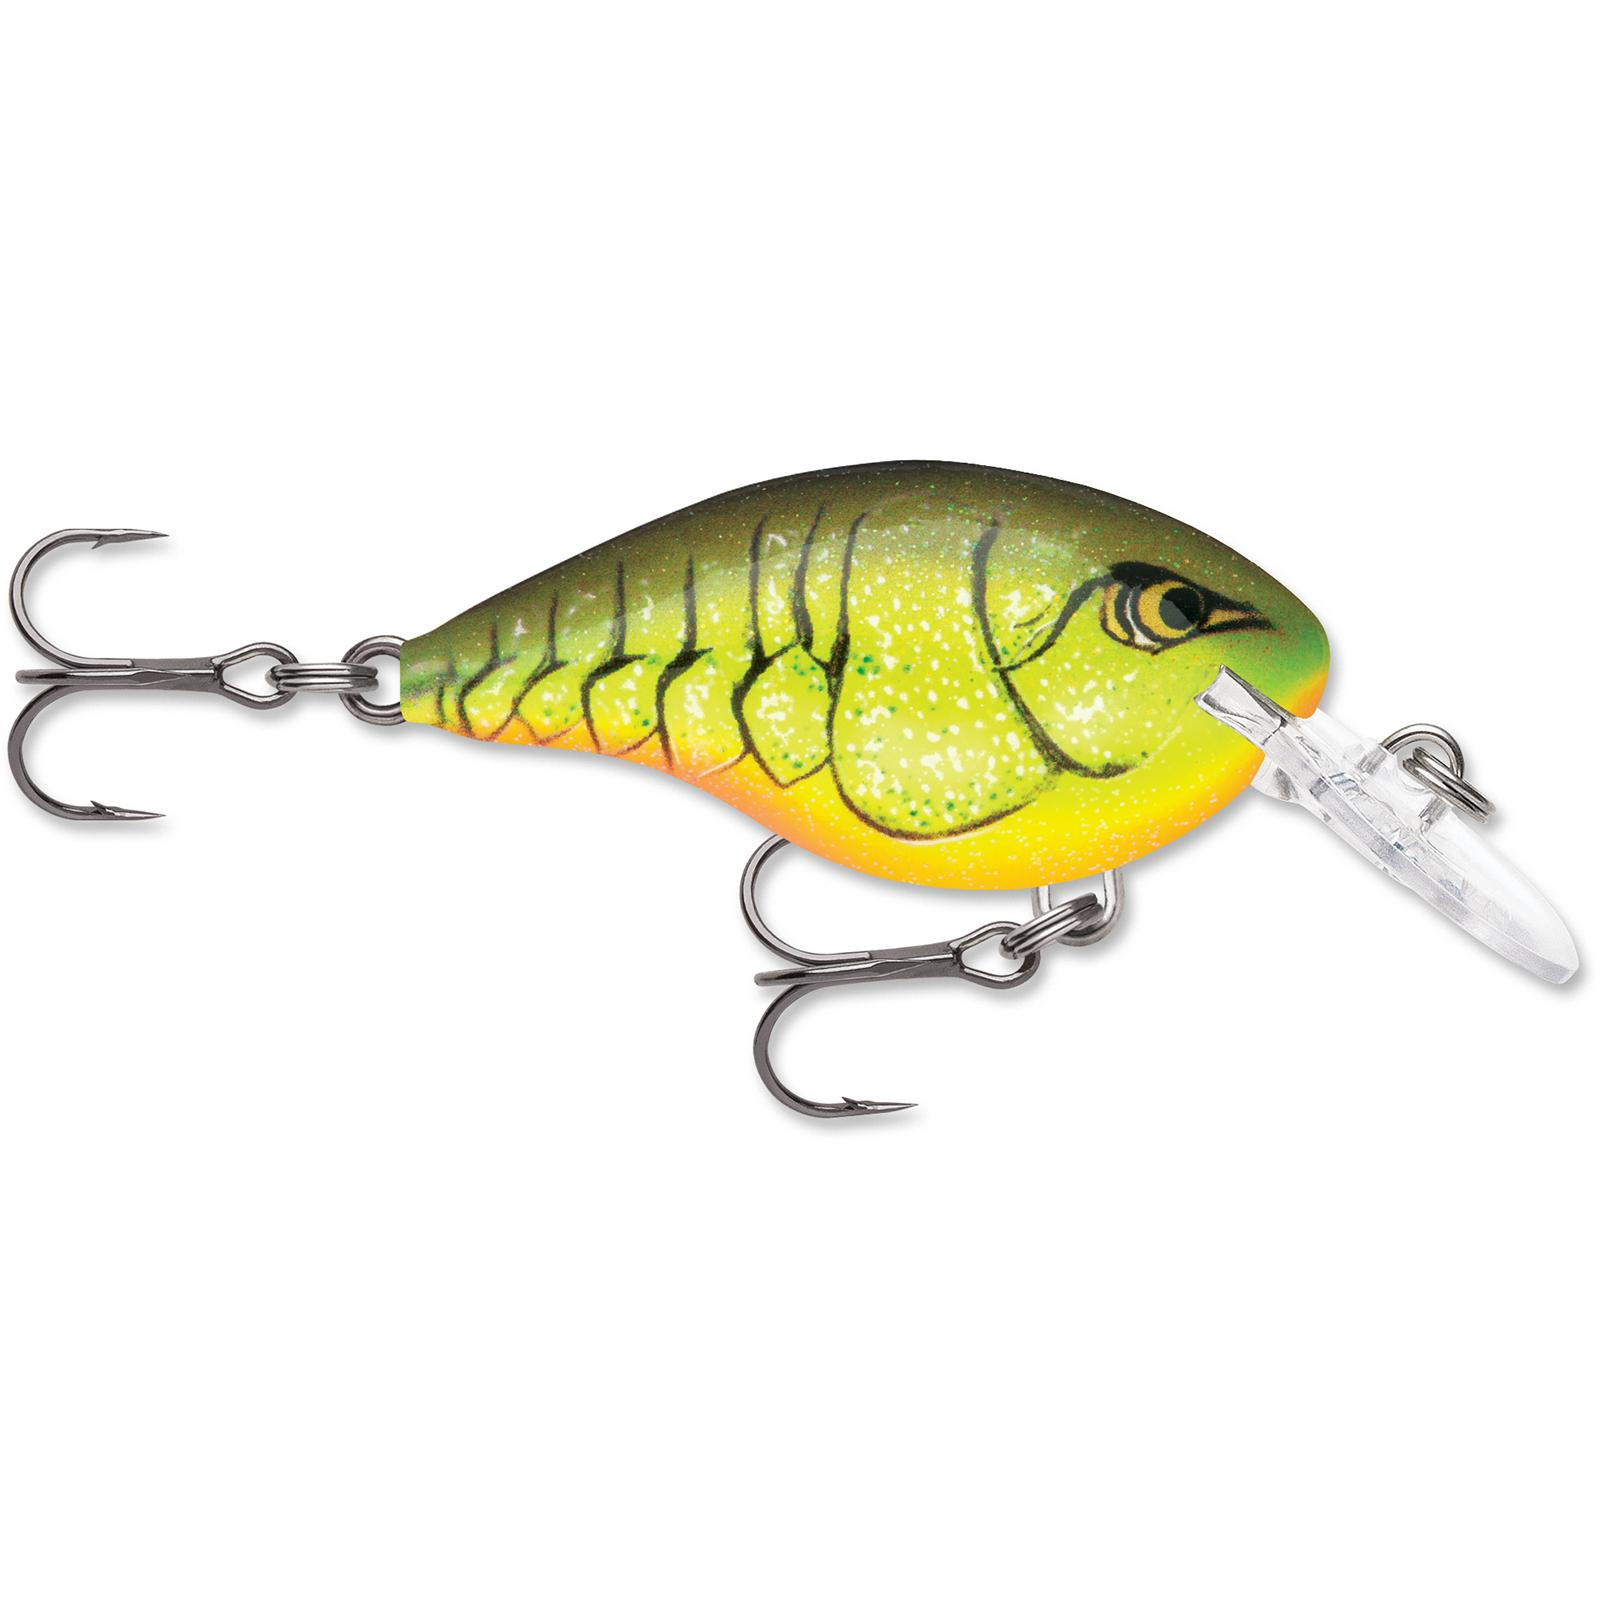 Dives-To NEW Rapala®   DT® Series DT-10